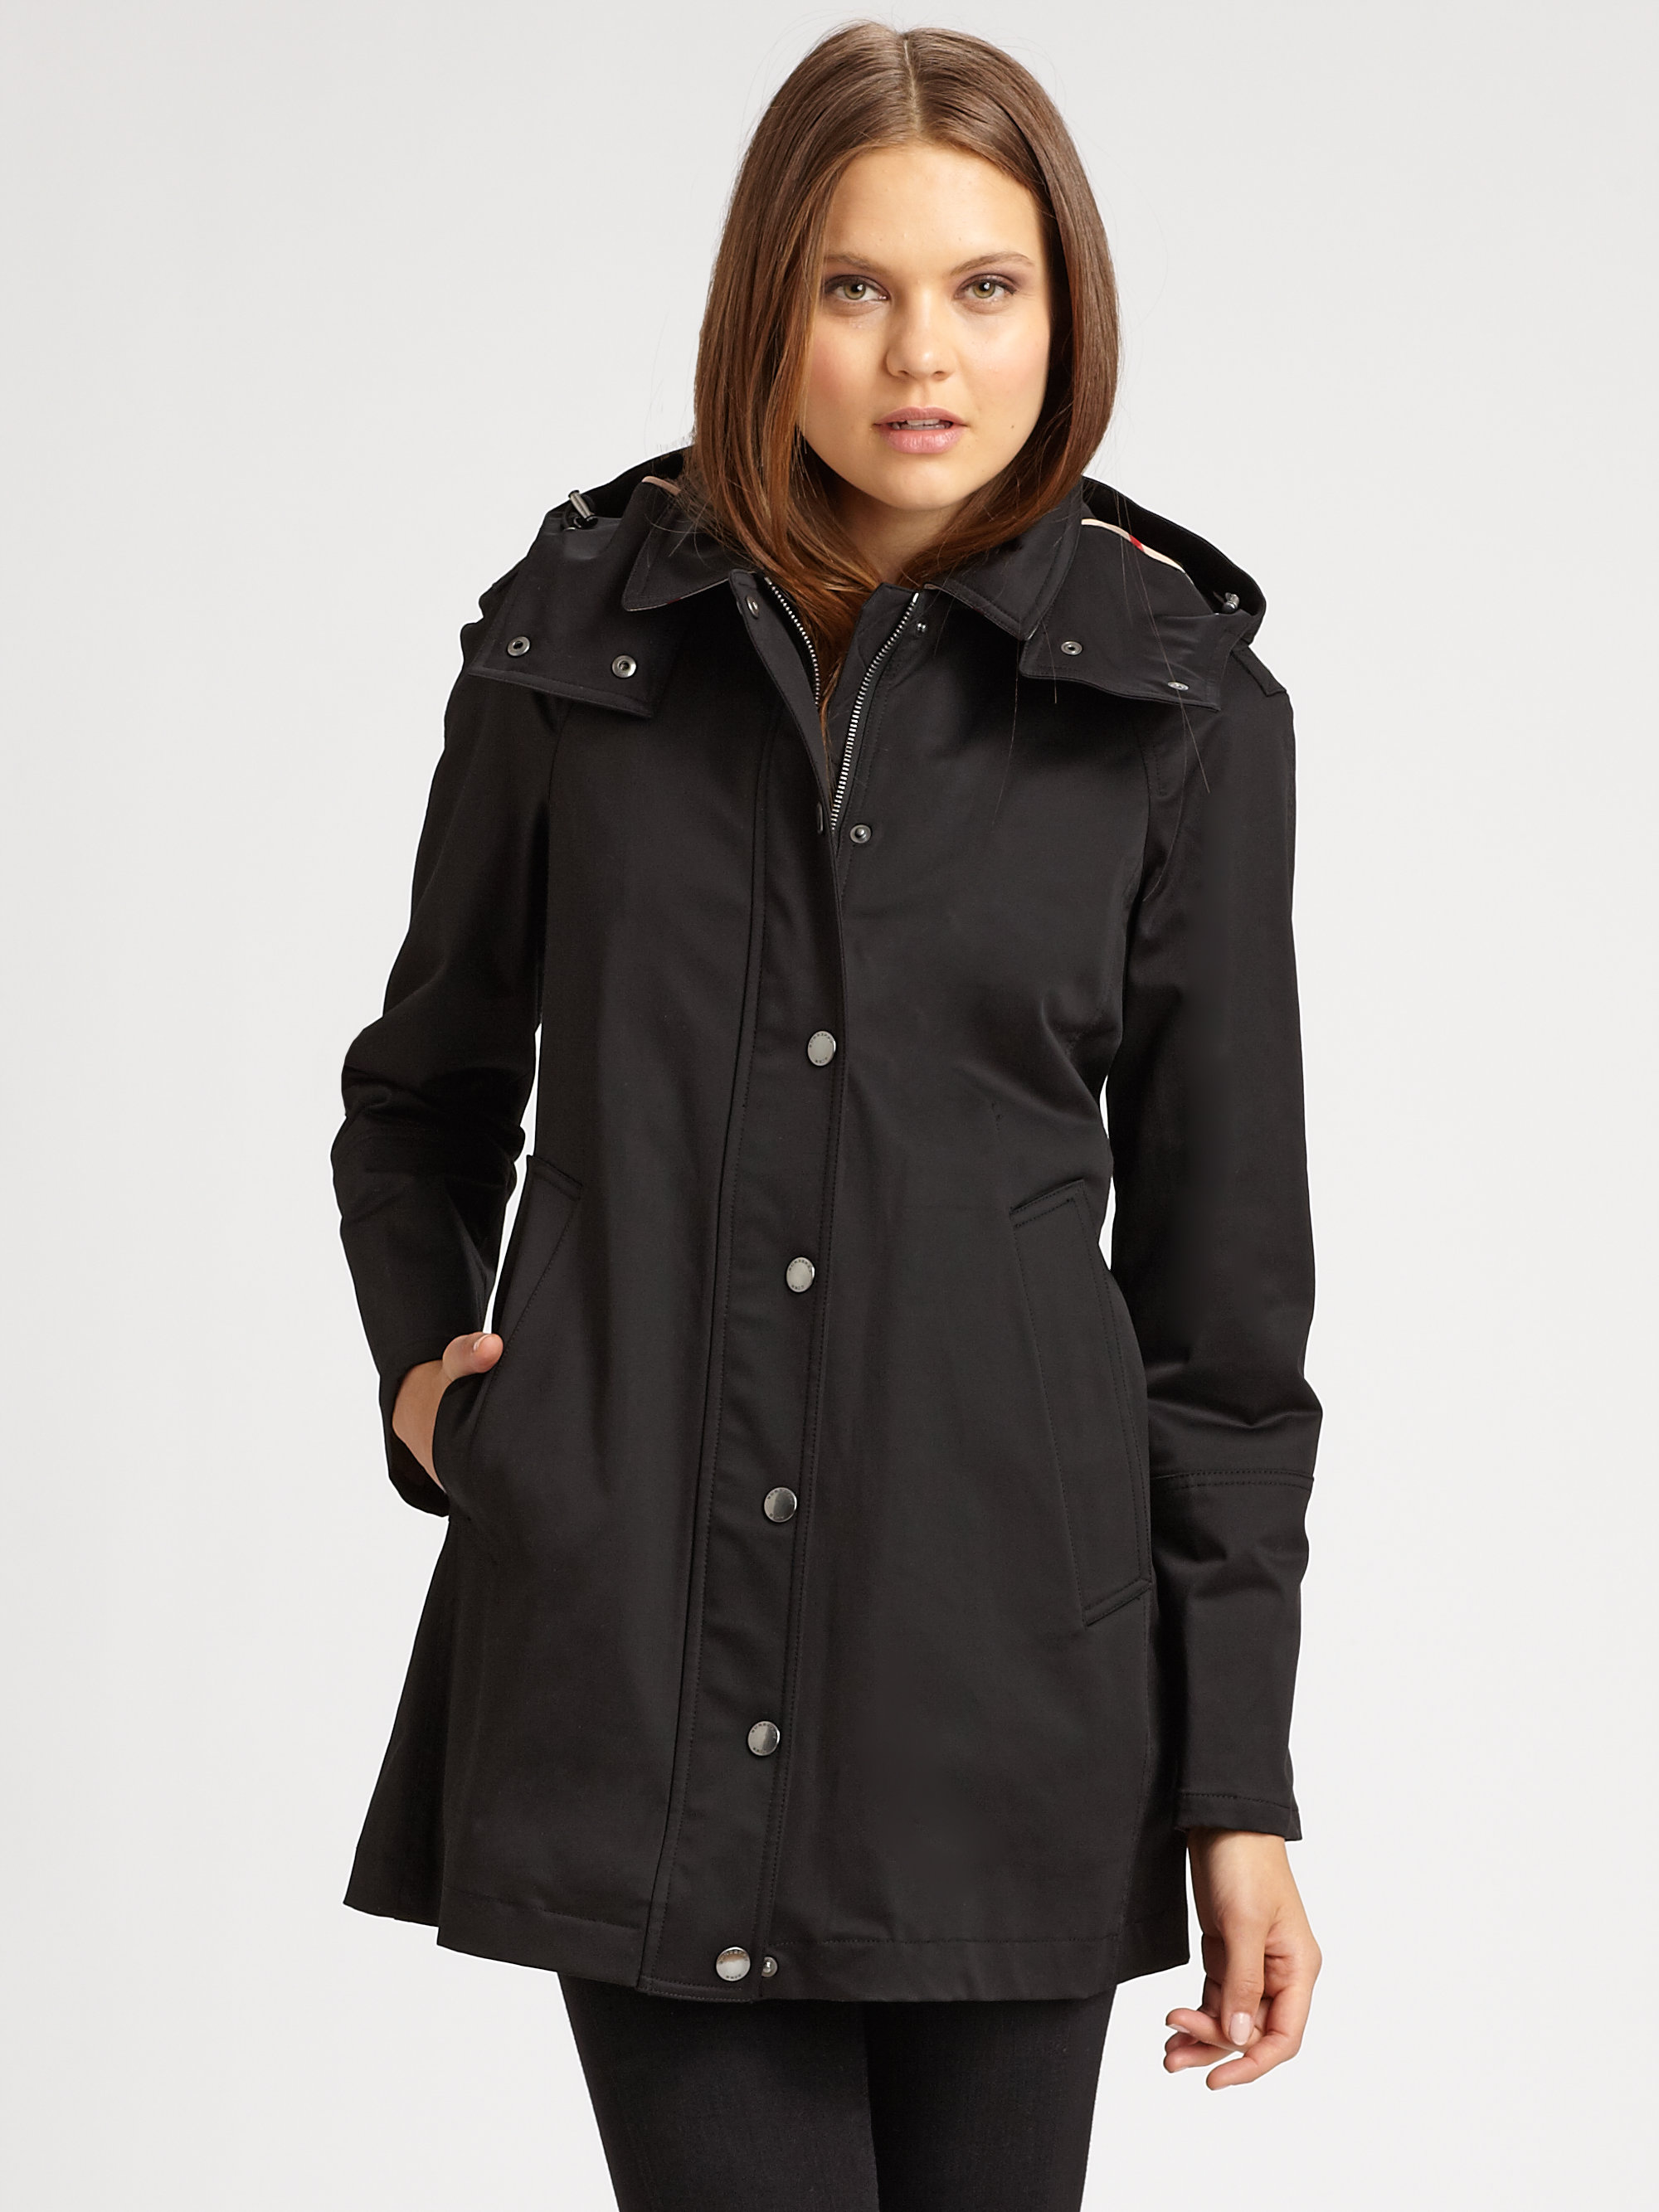 Free shipping and returns on Women's Raincoat Coats, Jackets & Blazers at shinobitech.cf